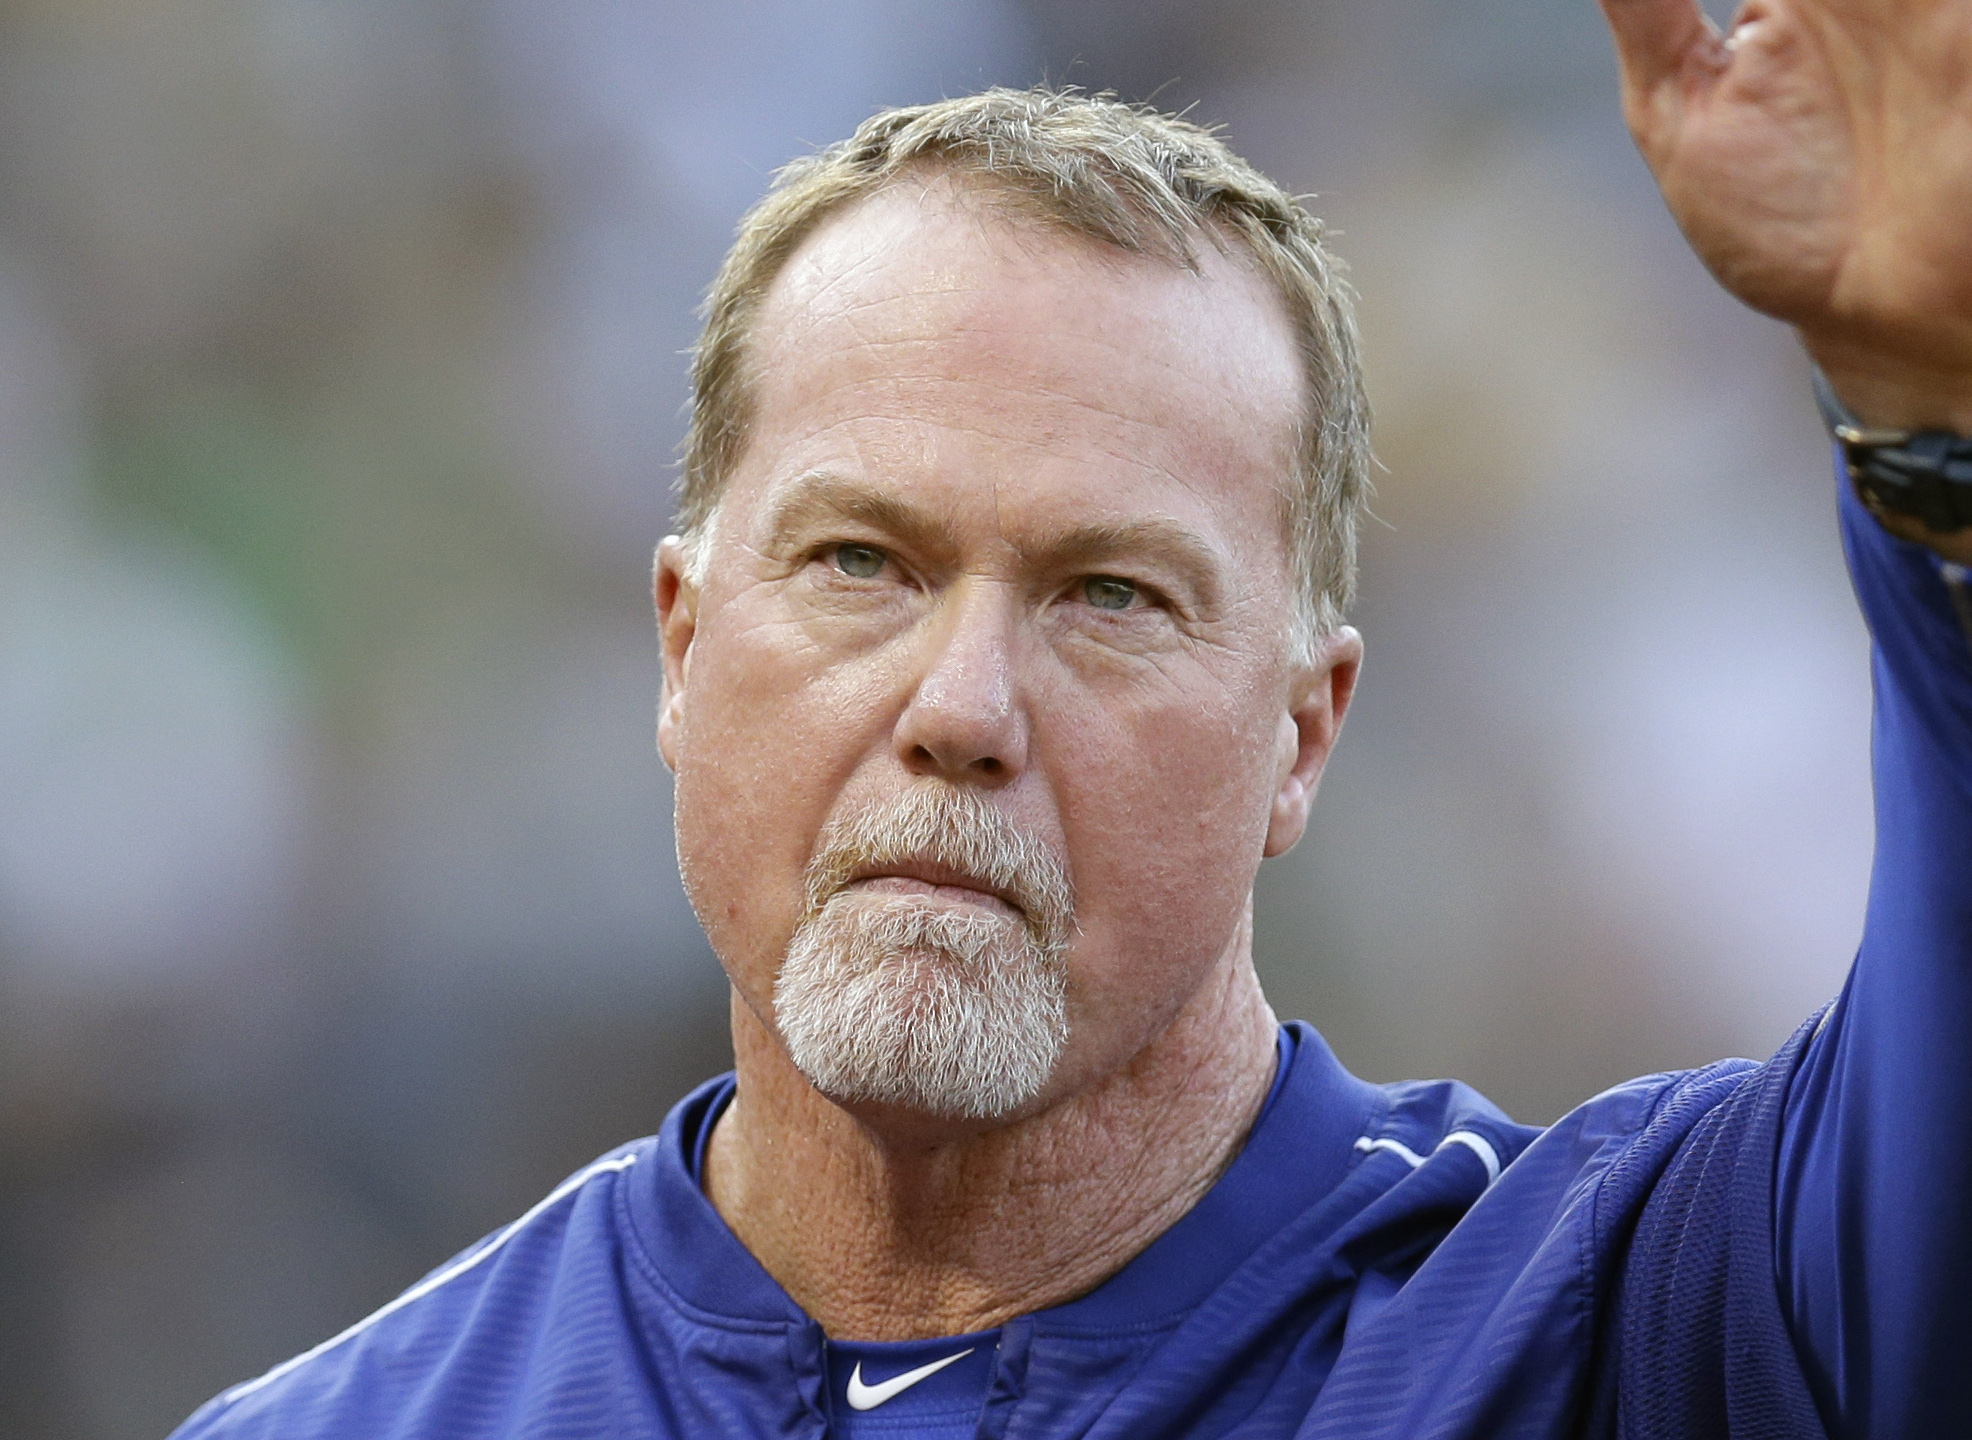 FILE - In this Aug. 18, 2015, file photo, then-Los Angeles Dodgers hitting coach Mark McGwire is shown prior to a baseball game against the Oakland Athletics, in Oakland, Calif. New Padres bench coach Mark McGwire is absent from spring training while he t